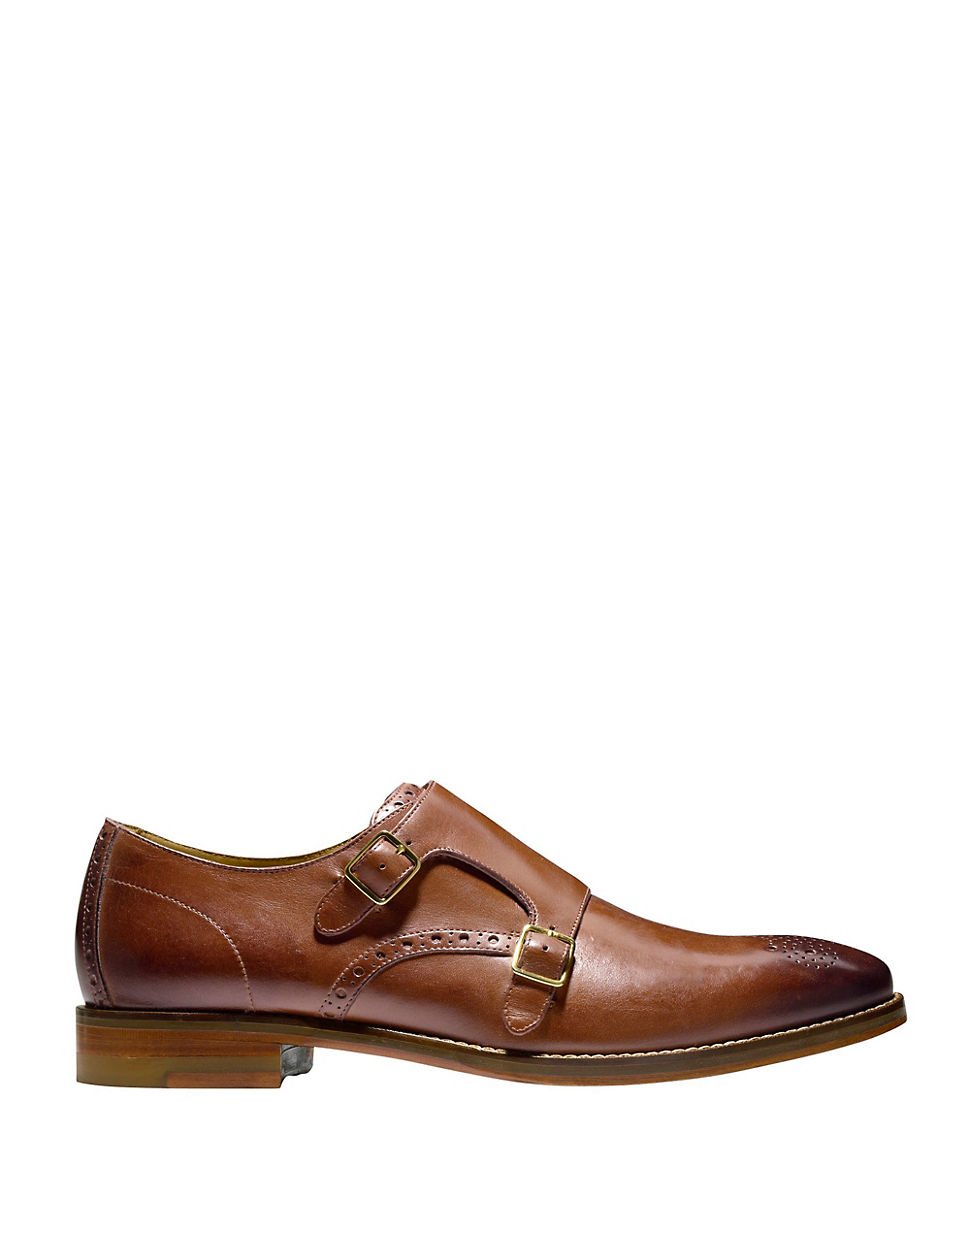 Brown Dress Shoes For Work